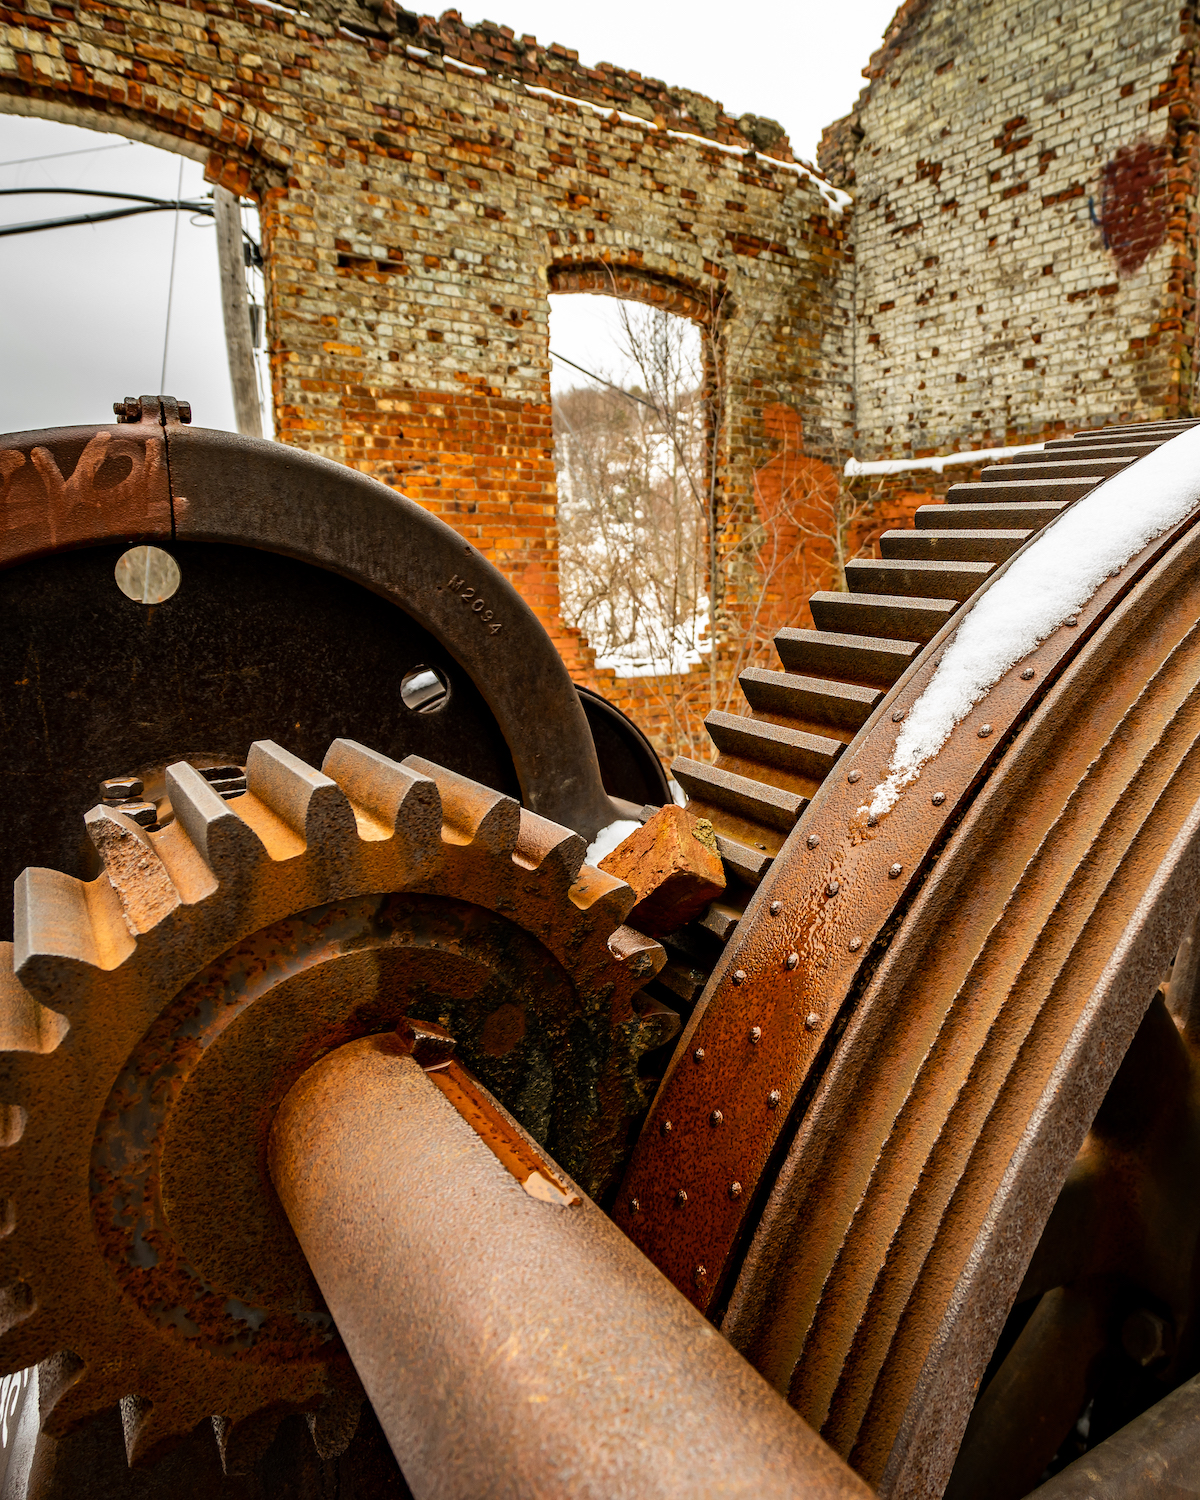 Rusty gears with a brick clogging them